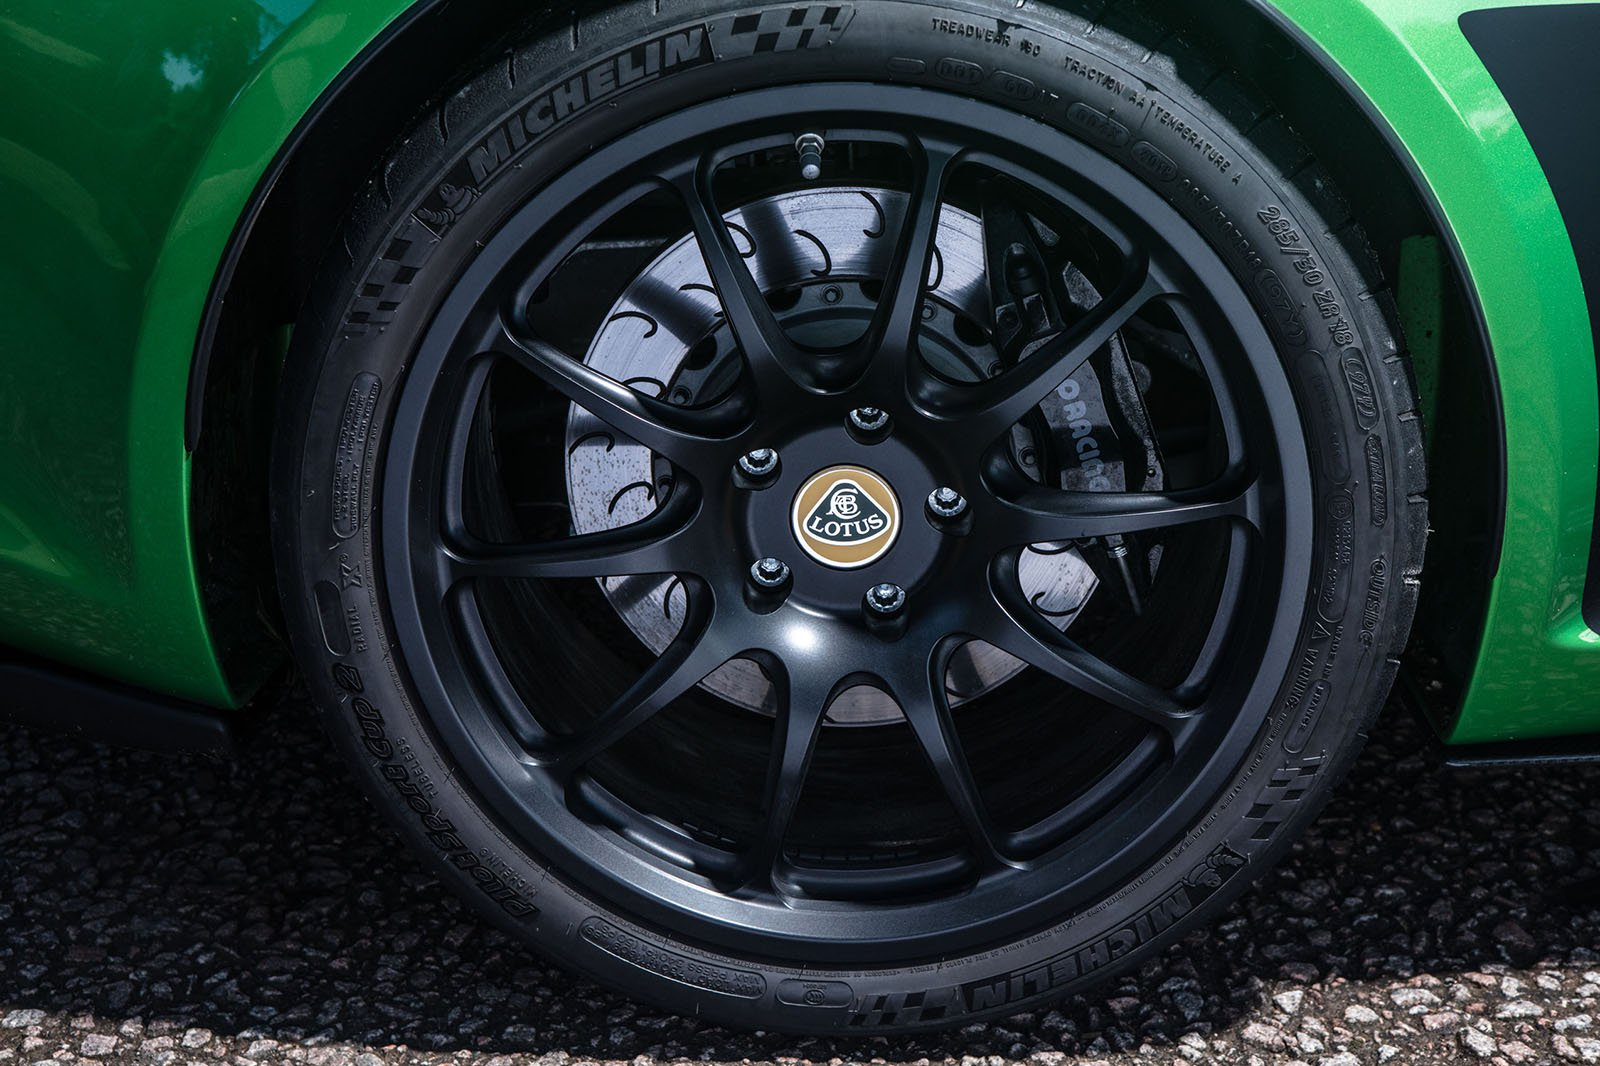 Lotus Exige 2020 RHD wheel detail